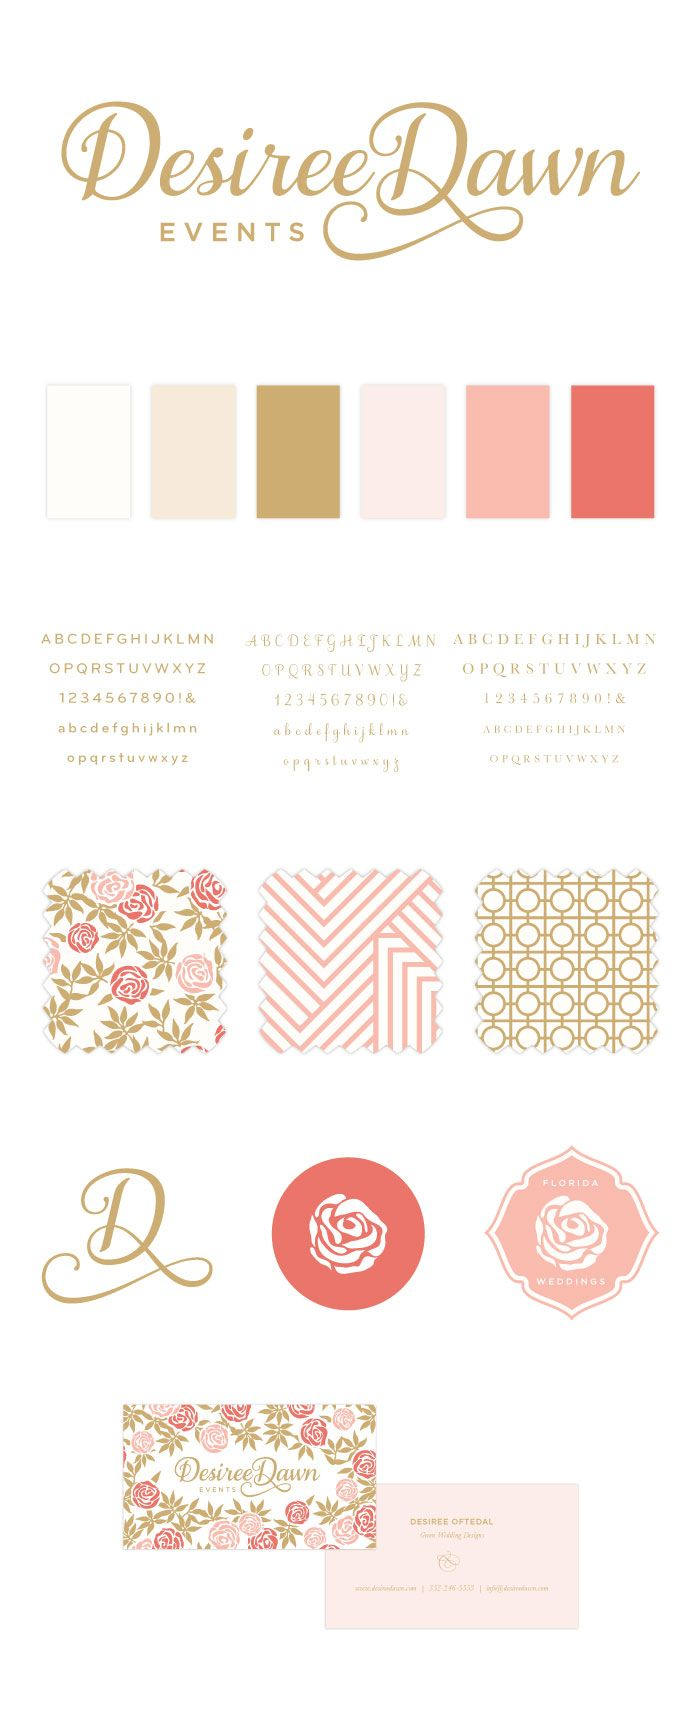 Like the 2 flower icons towards bottom so cute!! This combined with more classic font would be beautiful